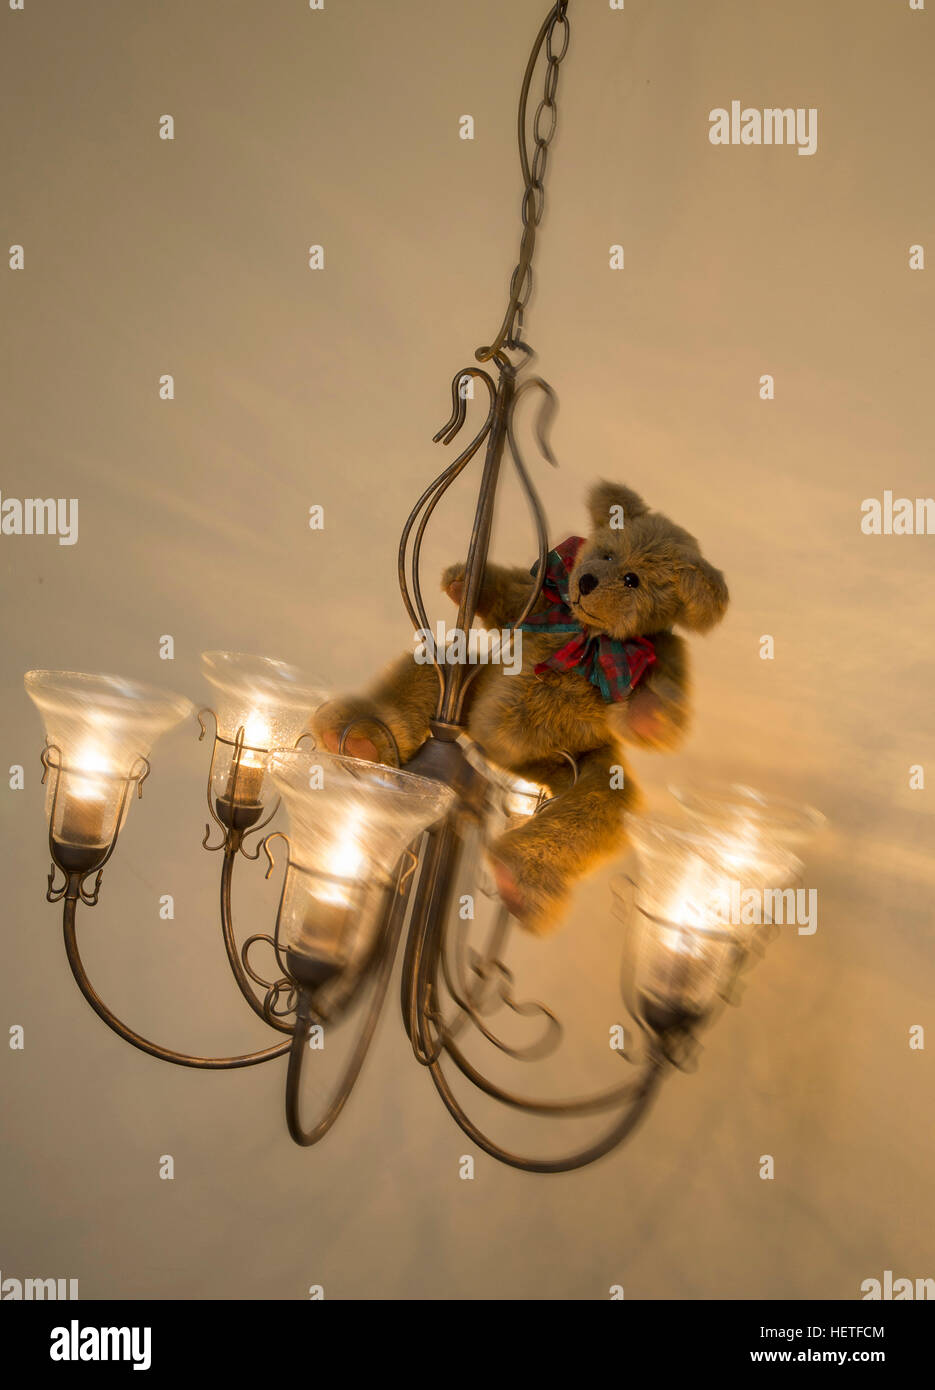 teddy-bear-wearing-a-christmas-bow-swing